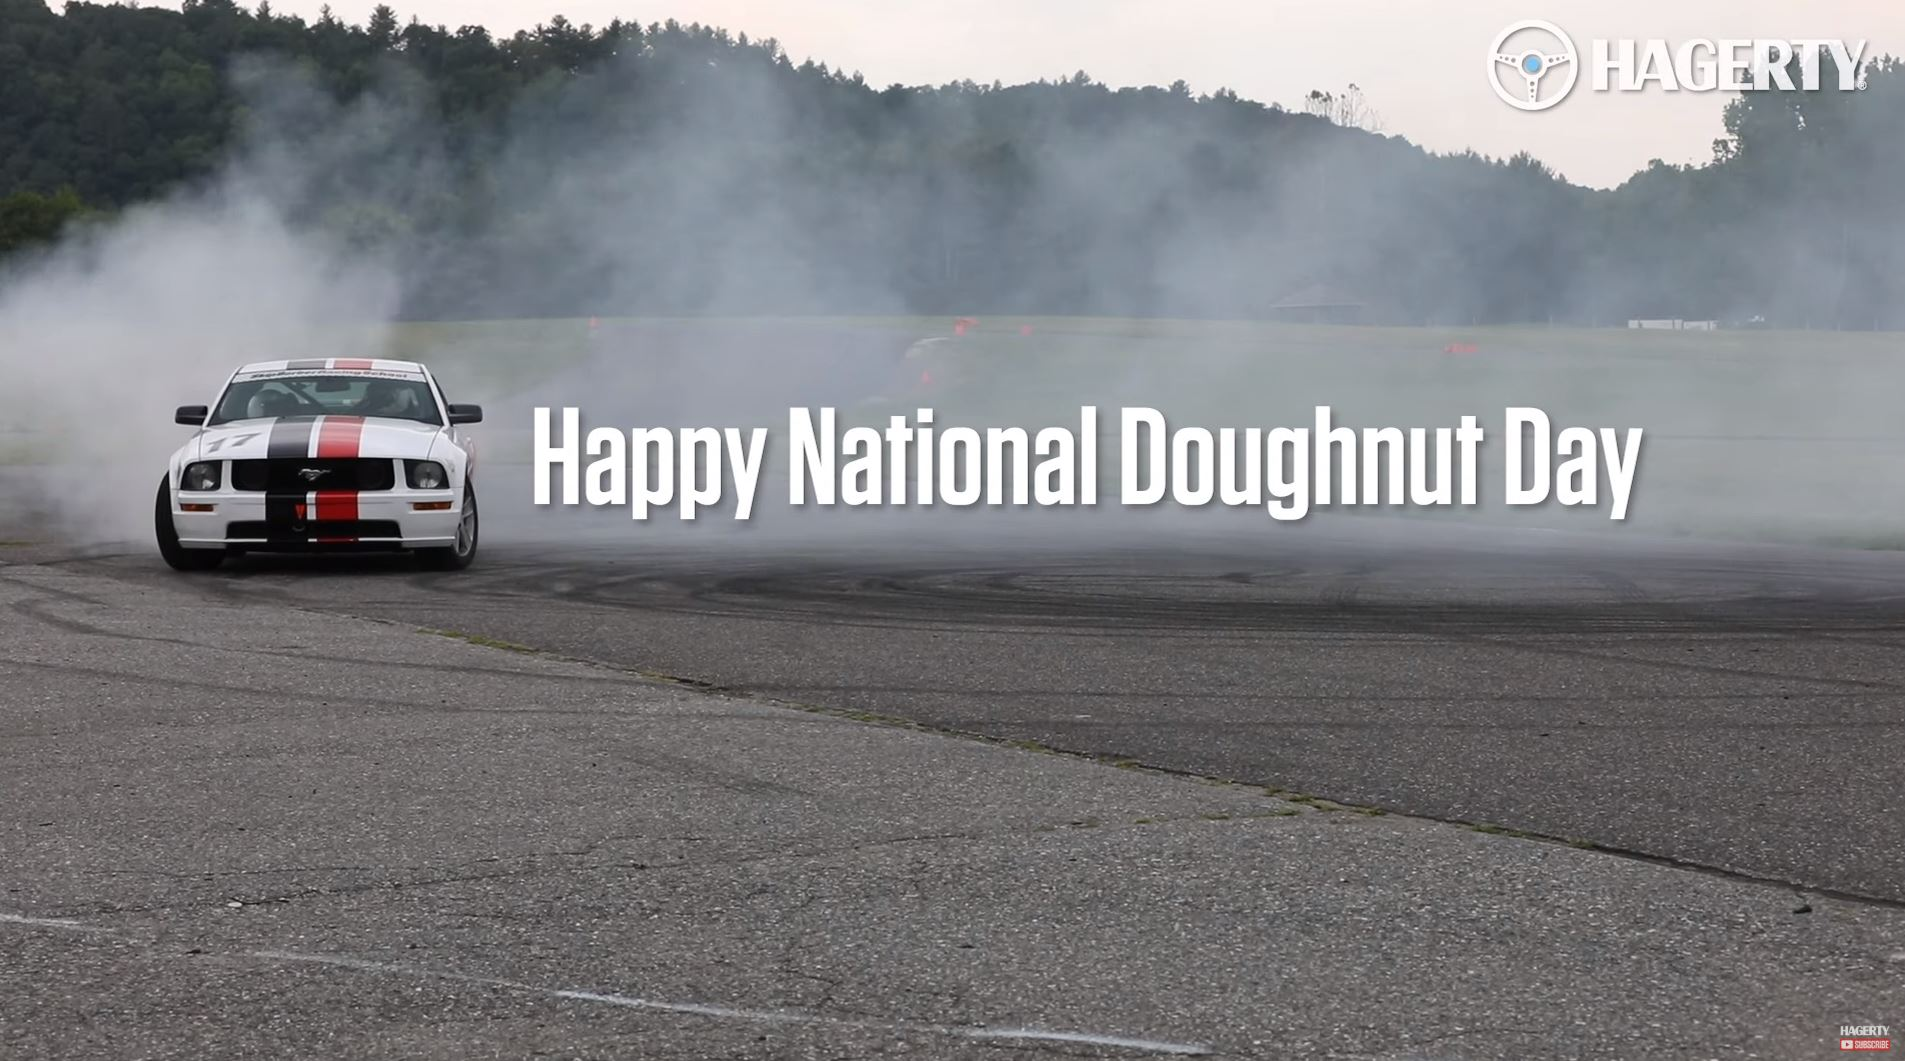 Here's how Hagerty celebrates National Doughnut Day thumbnail